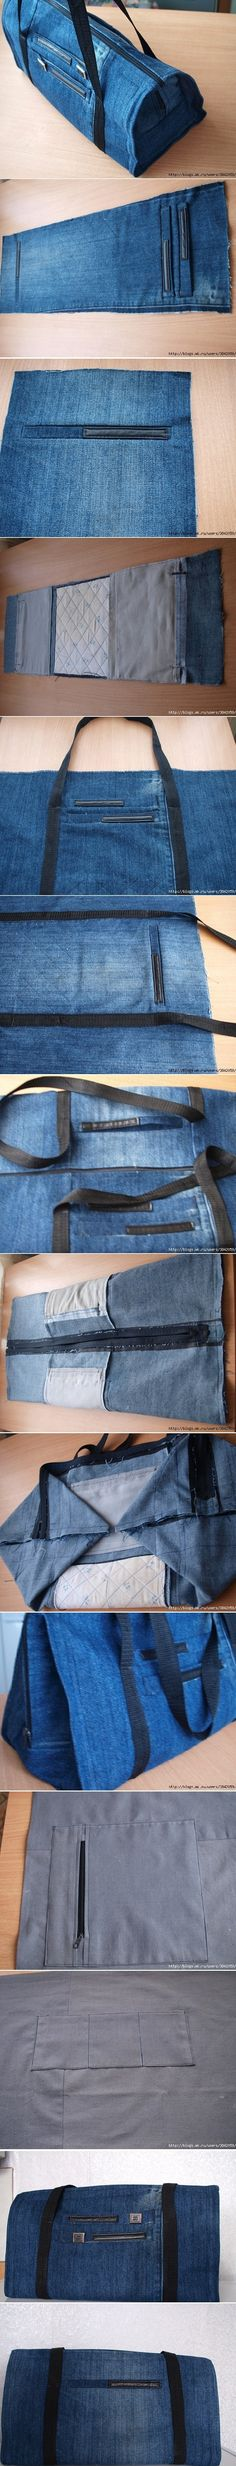 DIY handbag from old jeans. Diy Jeans, Recycle Jeans, Shorts Jeans, Upcycle, Sewing Hacks, Sewing Tutorials, Sewing Crafts, Sewing Patterns, Denim Bag Patterns